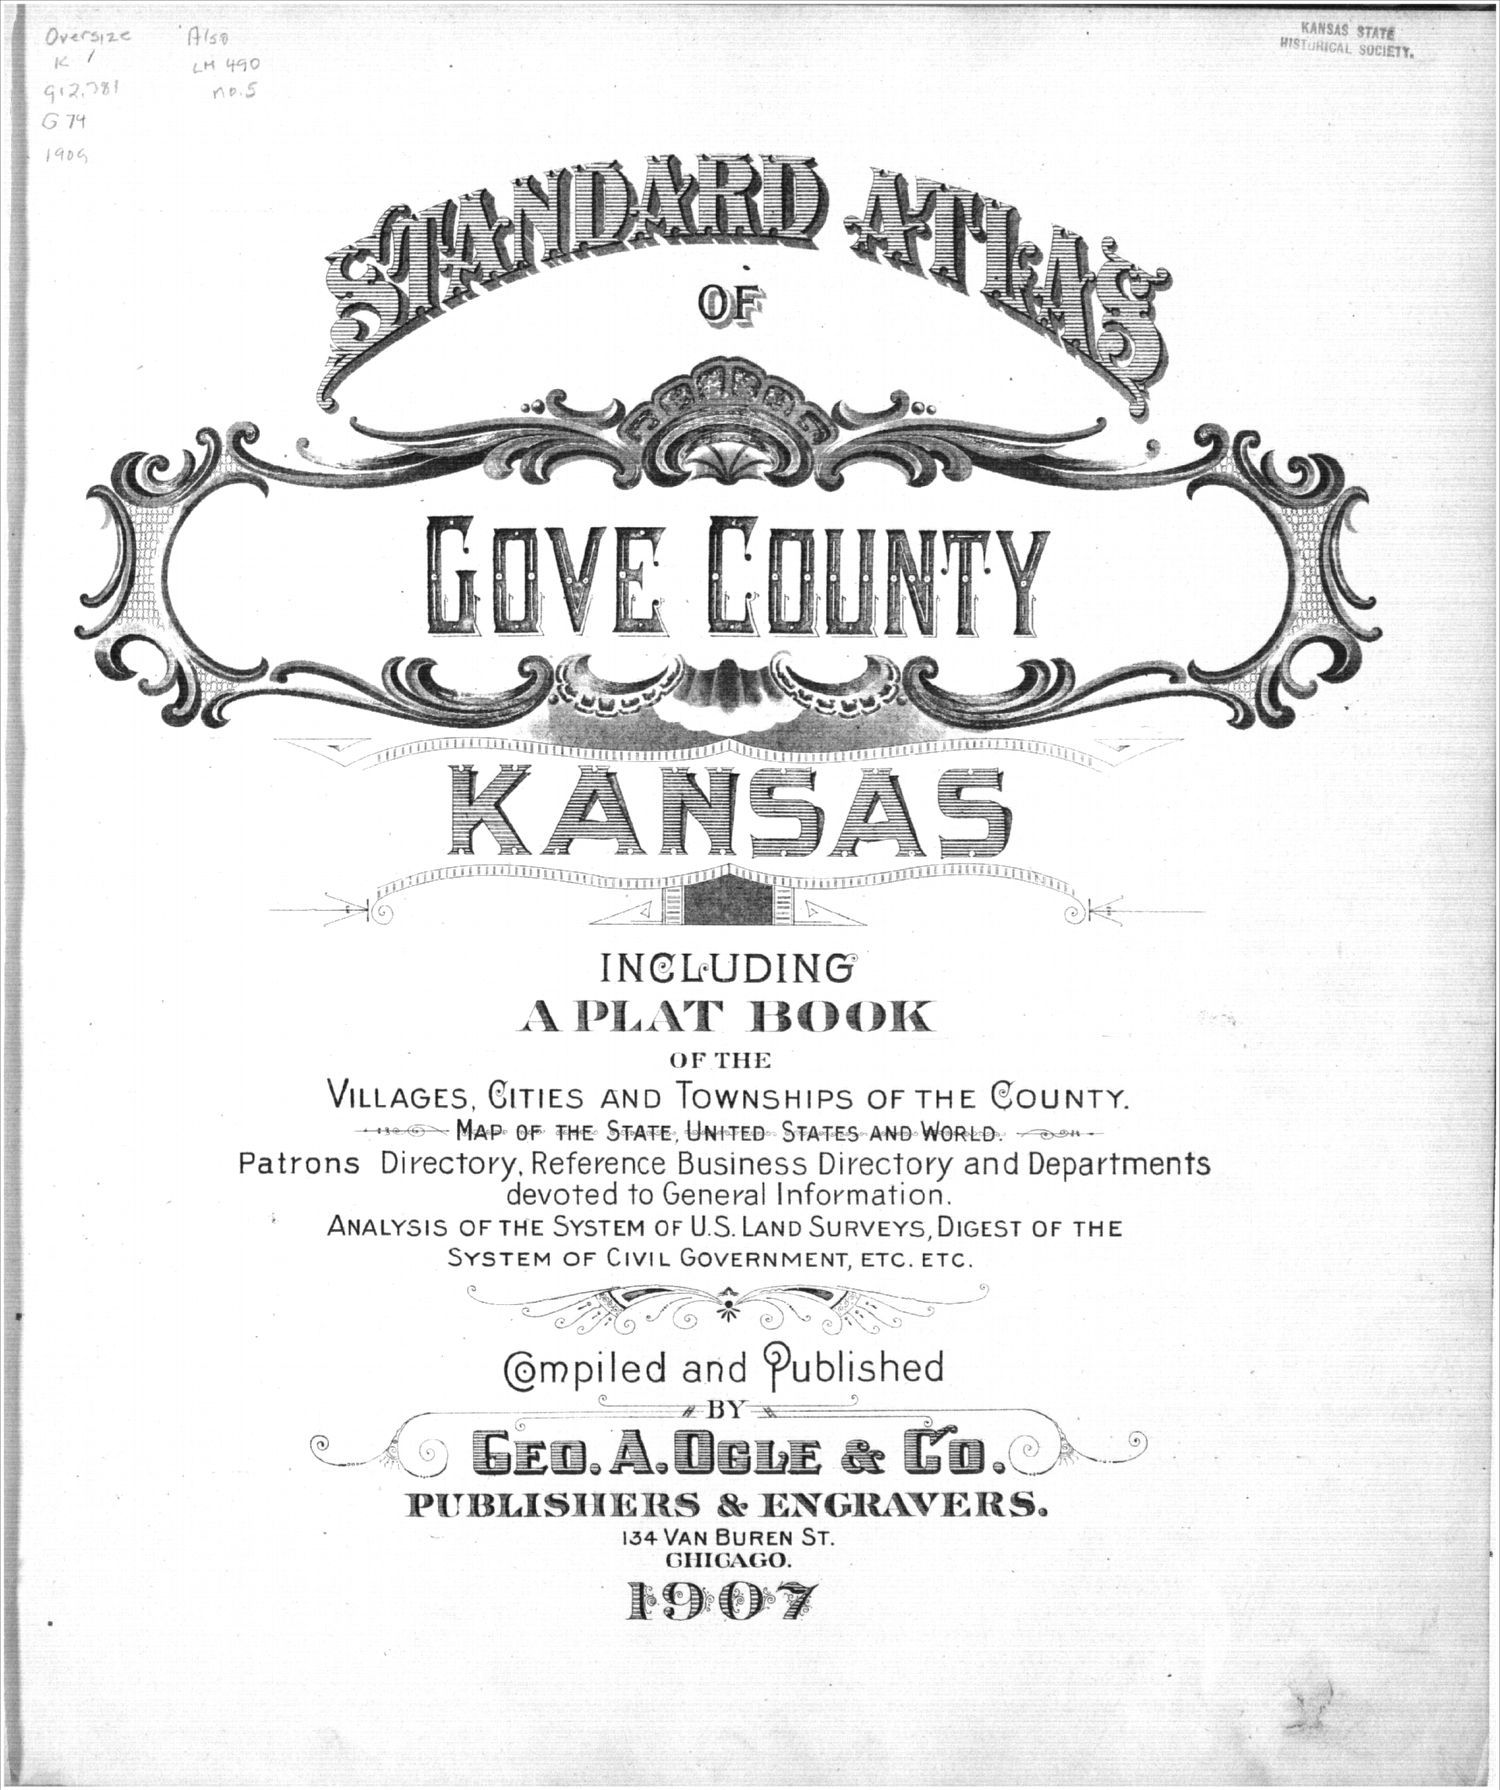 Standard atlas of Gove County, Kansas - Title Page